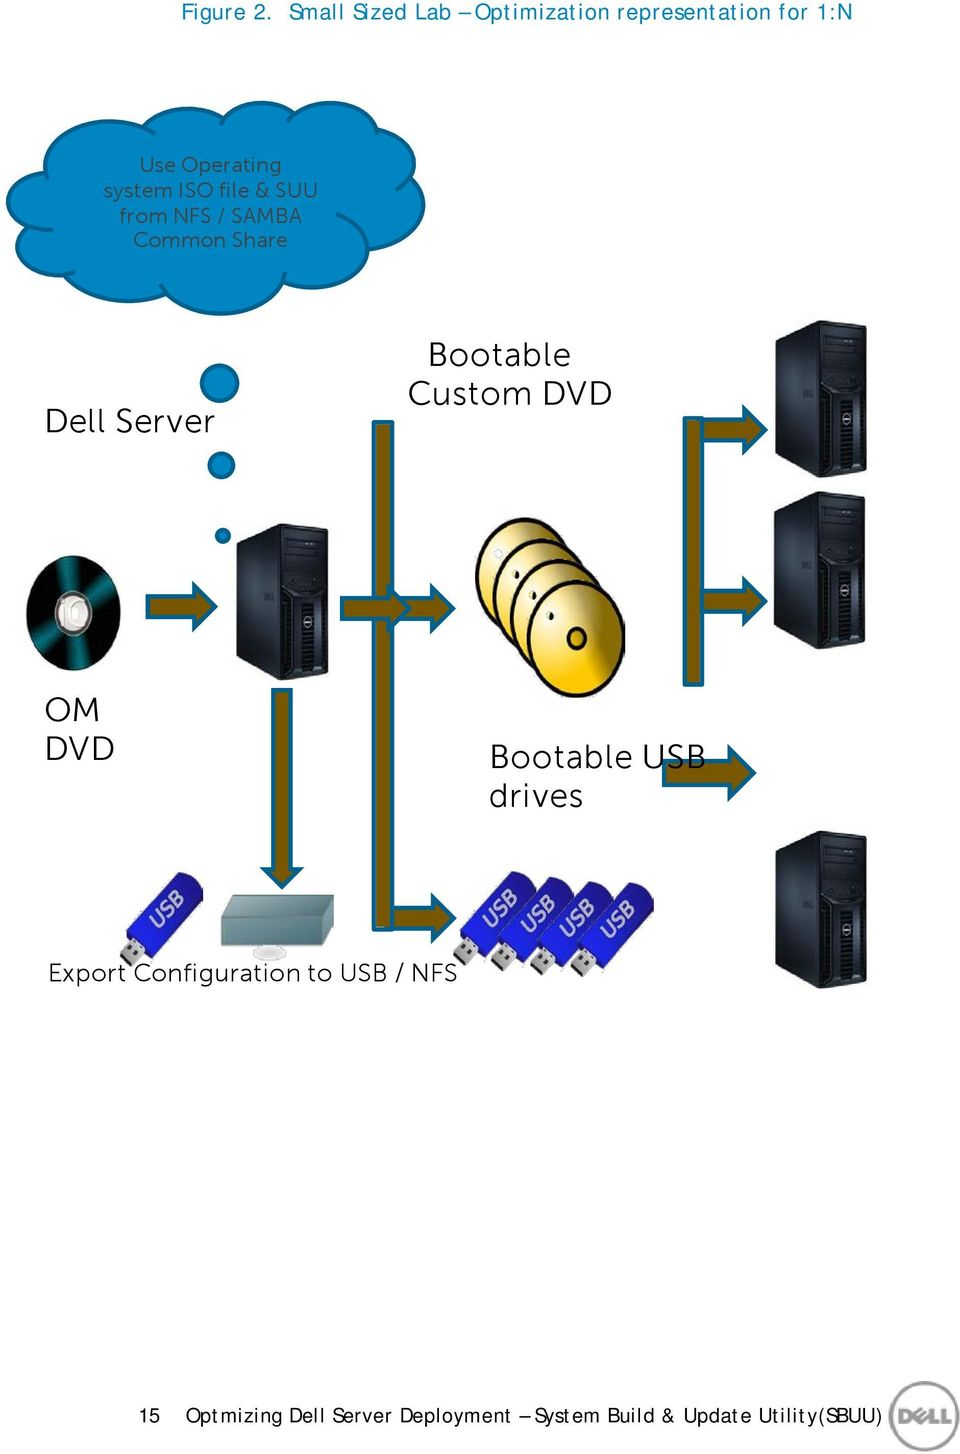 Optimizing Dell server deployments with system build and update